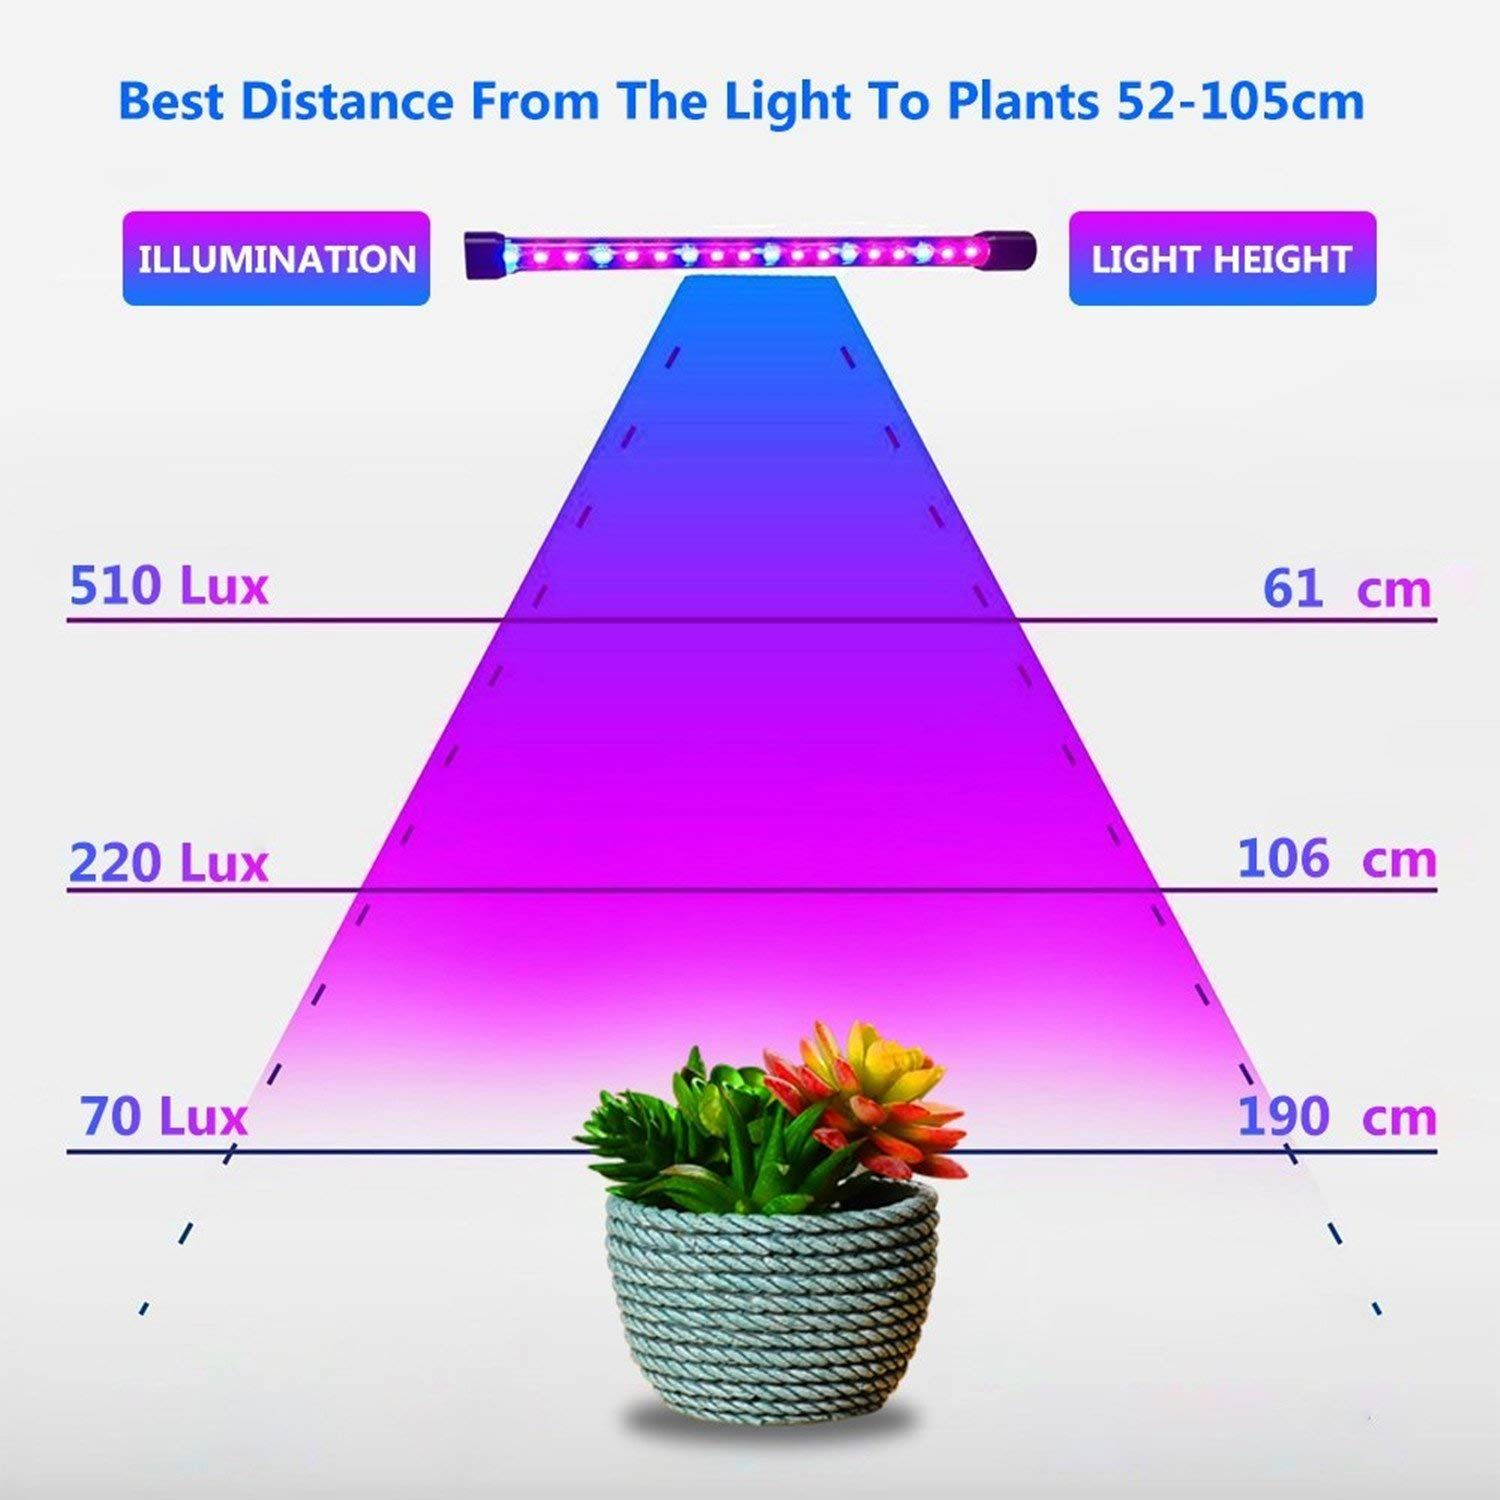 Why Choose Led Grow Lights Led Lights Are The Best Choice Because They Produce Less Heat Use Less Electrici Led Grow Lights Grow Lights Greenhouse Gardening